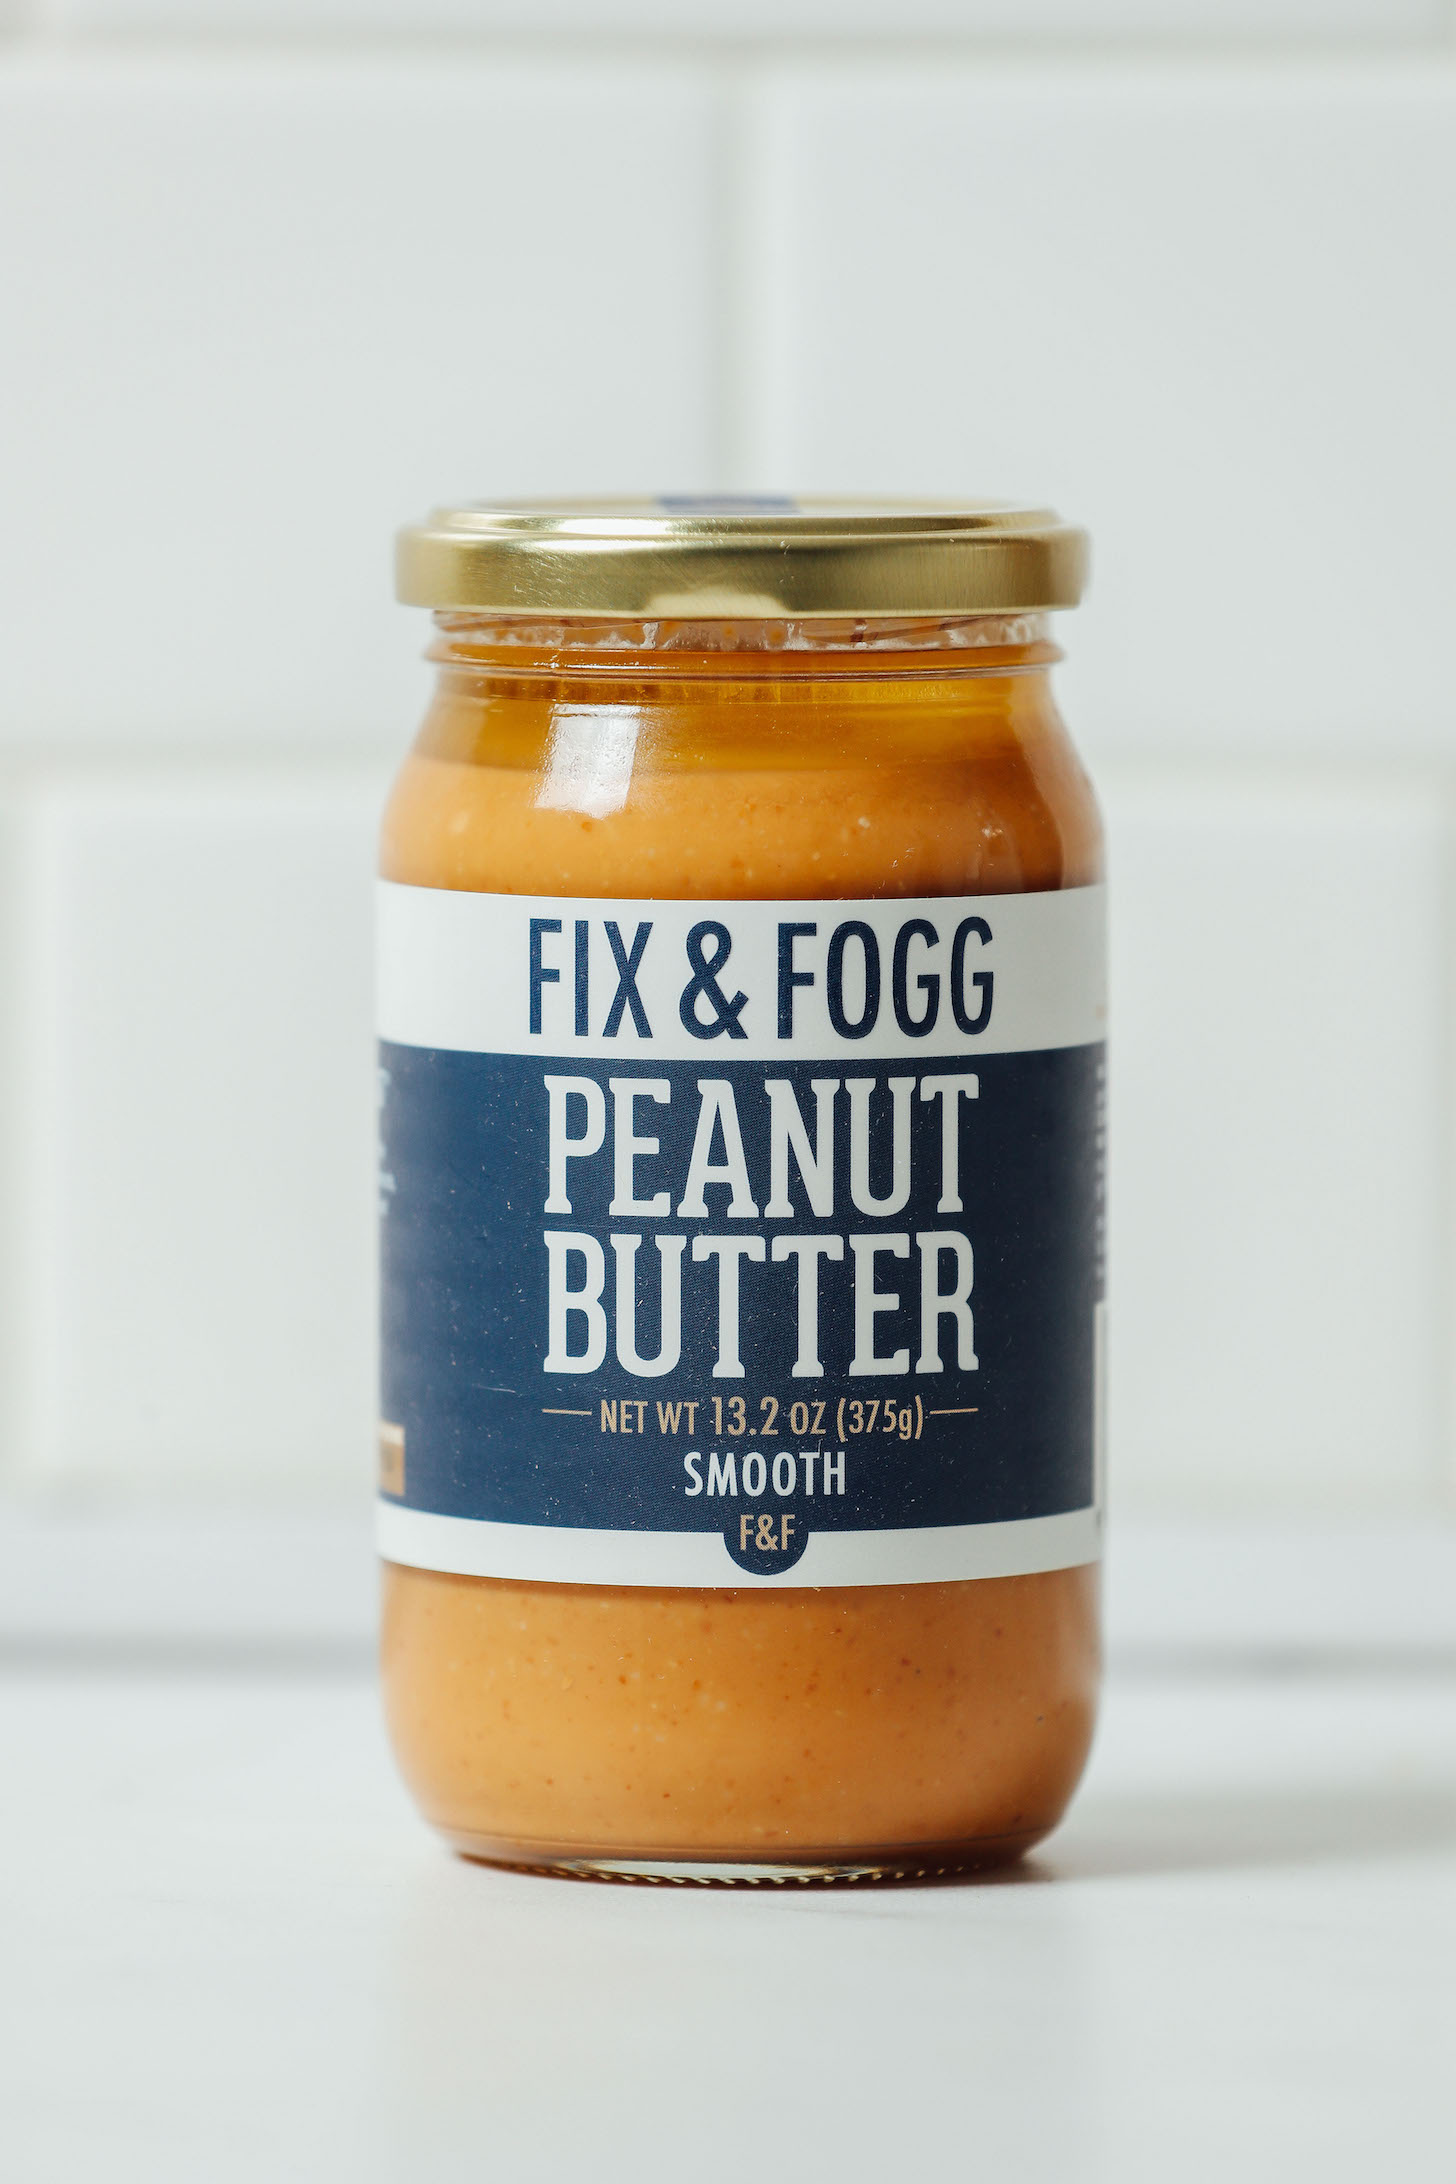 Jar of Fix & Fogg Peanut Butter for our review of the most delicious brands of peanut butter